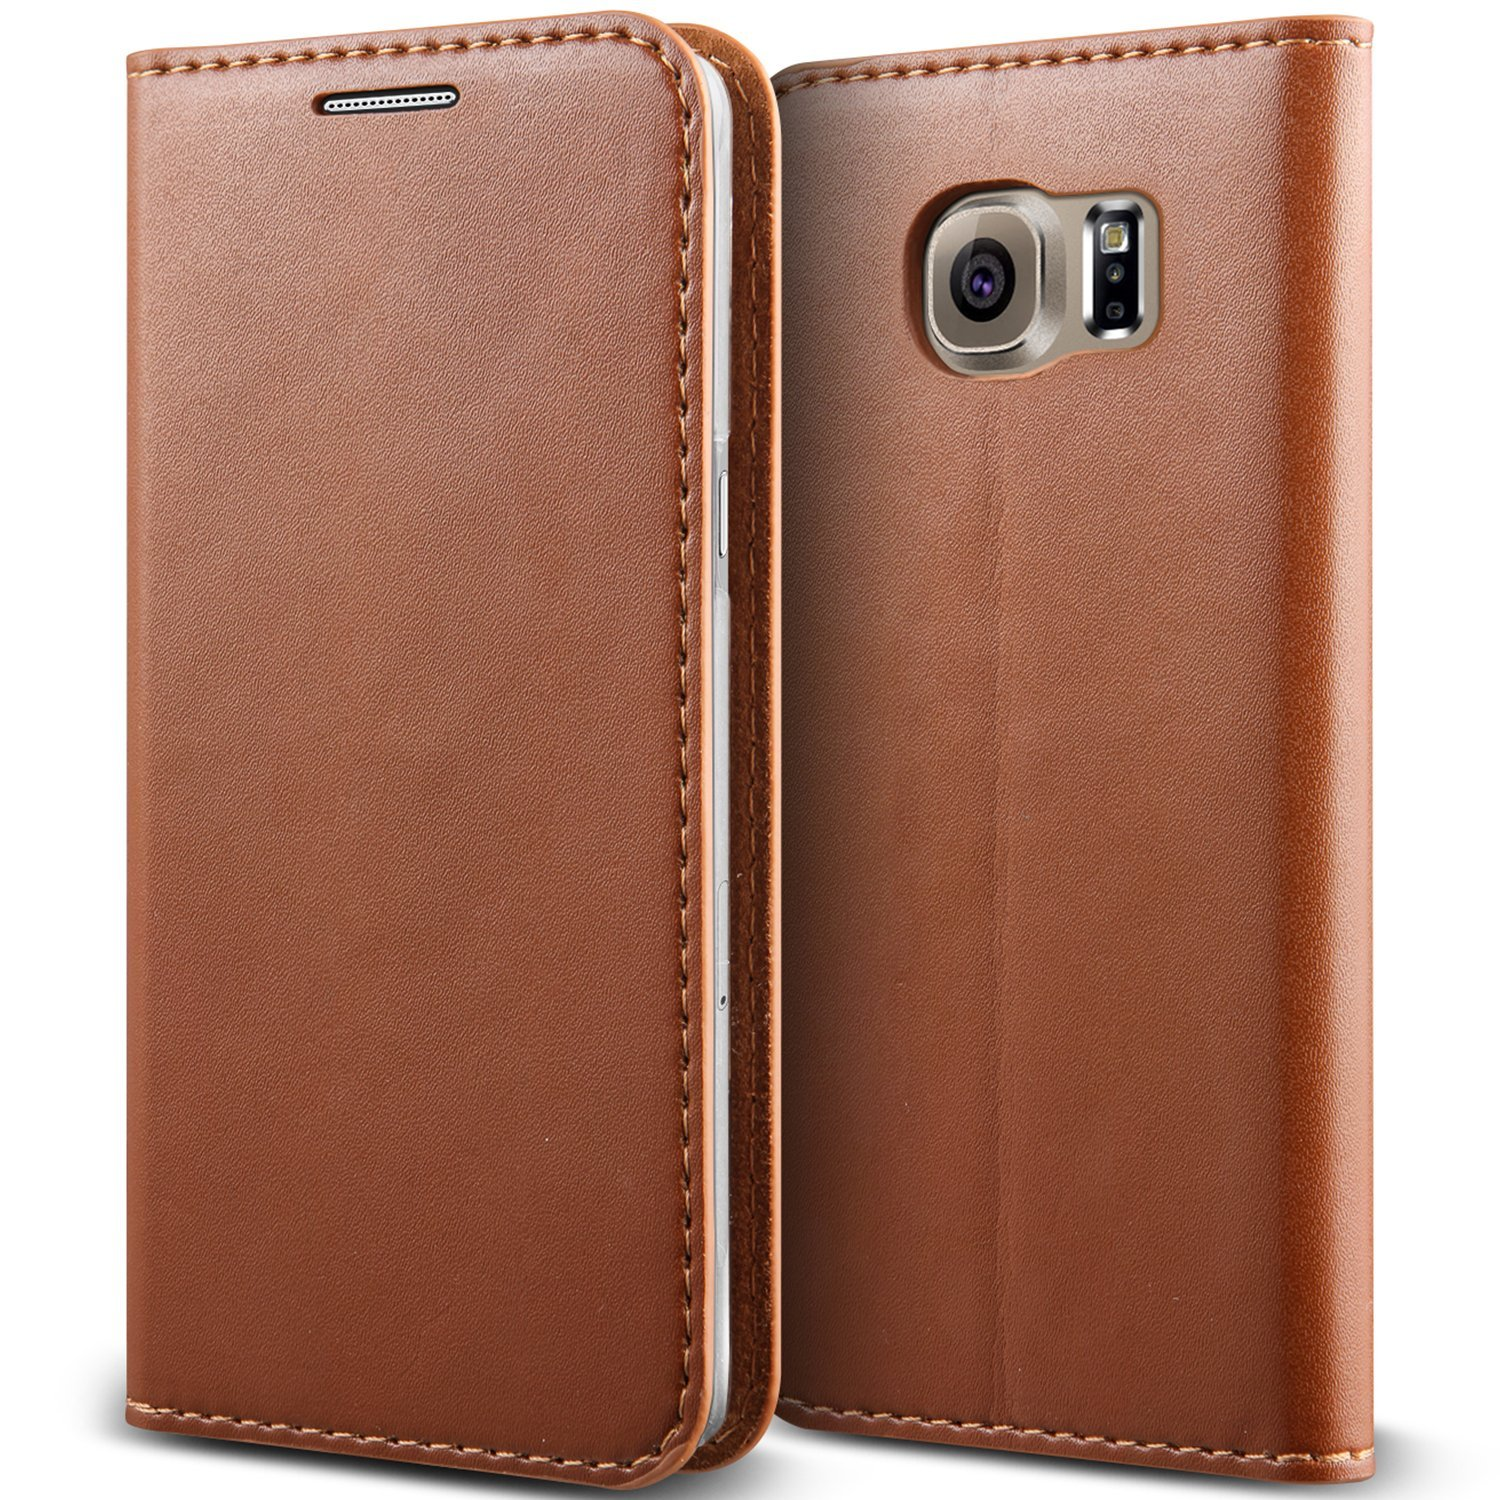 Galaxy S6 Case, Verus [Crayon Diary][Brown] - [Leather Wallet][Kickstand][Slim Fit] For Samsung Galaxy S6